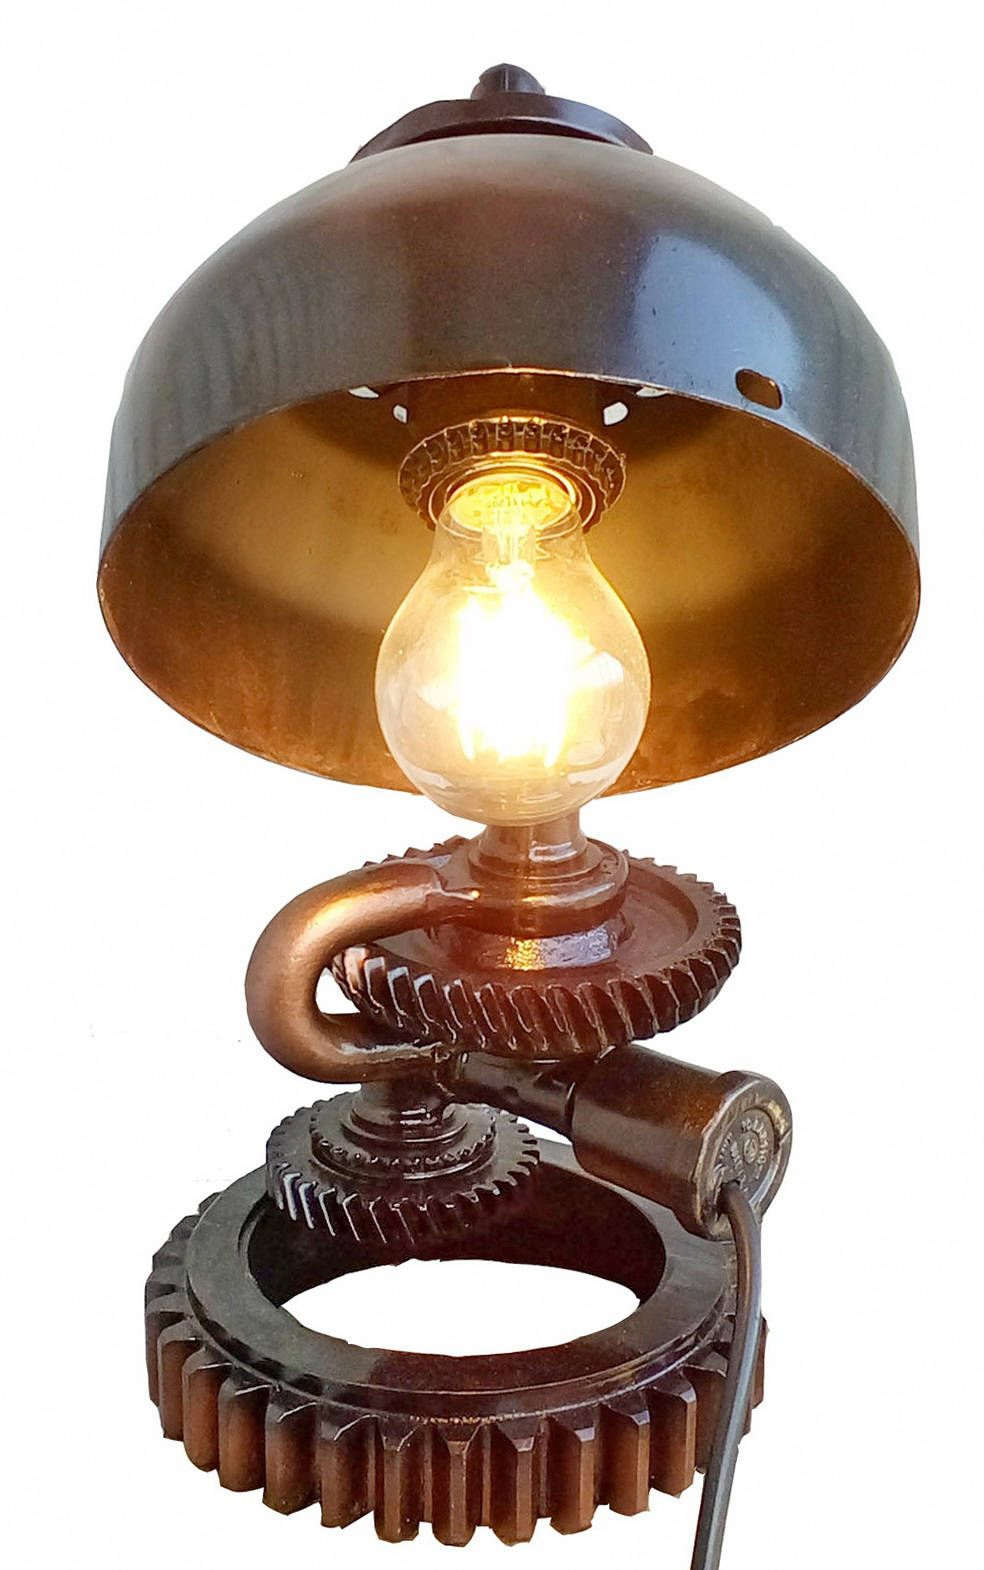 Living room lamps Pipe lamps for sale Industrial lamp Edison